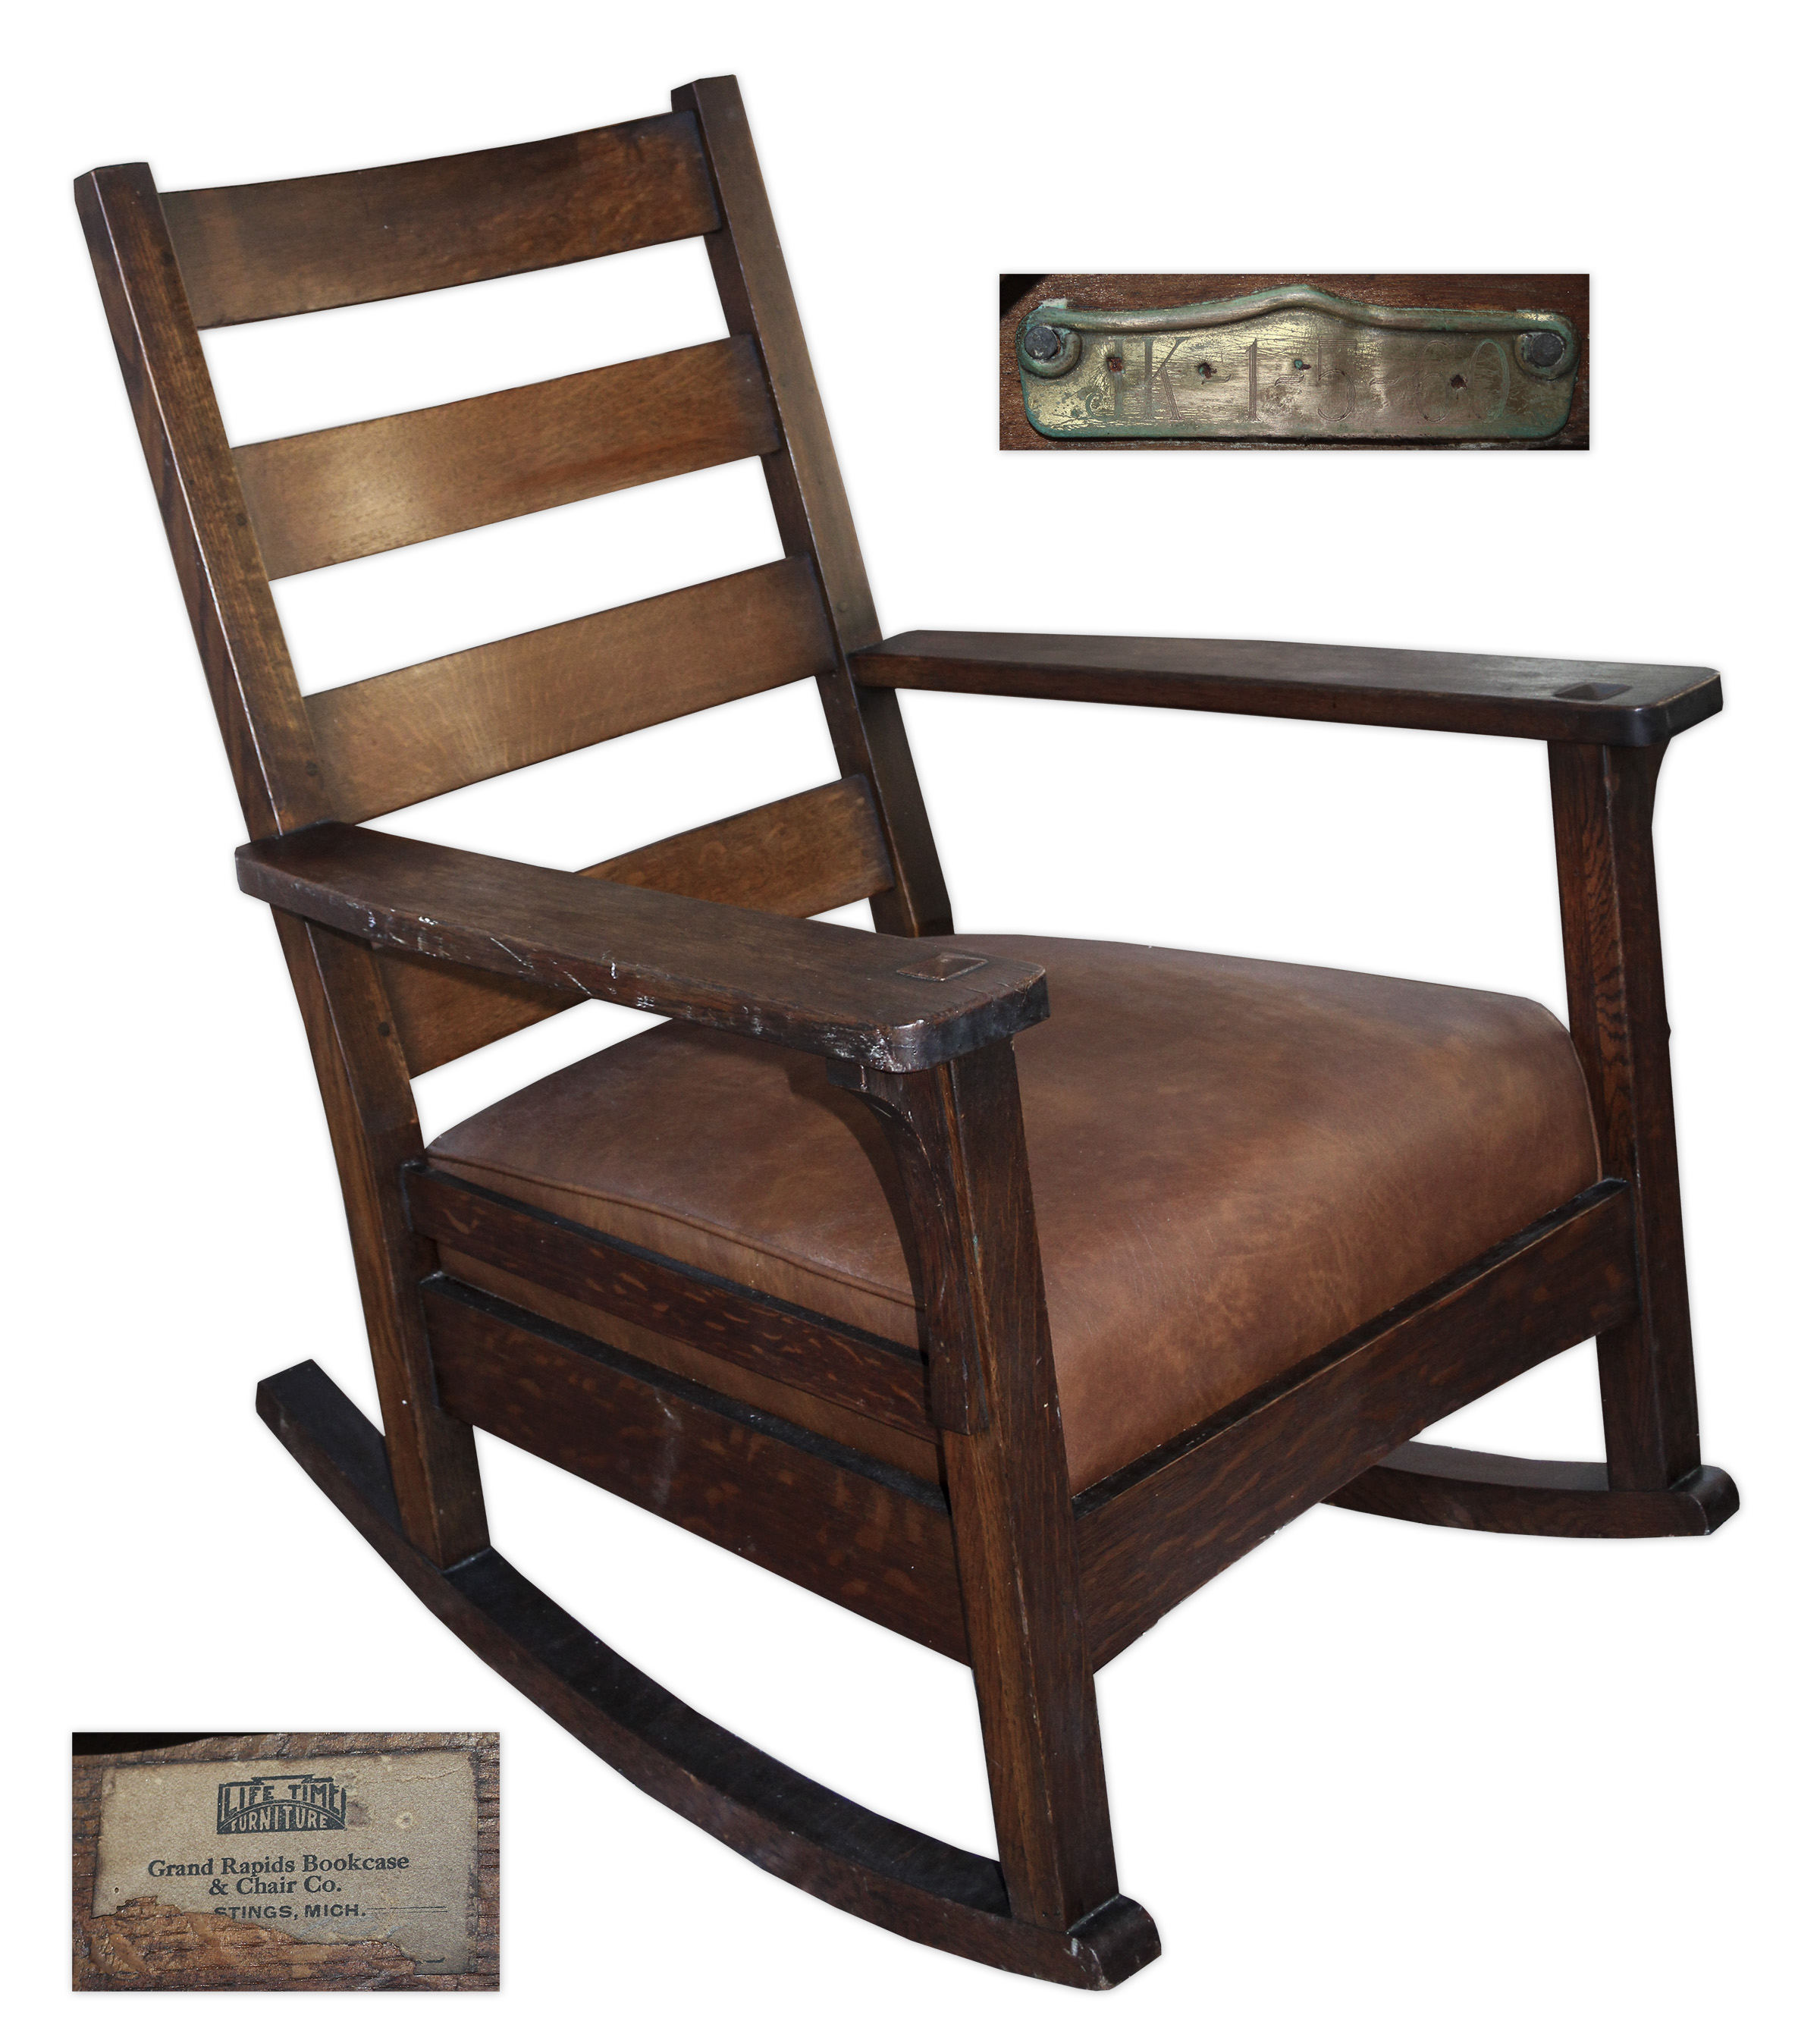 $70 000 Rocking chair used by Ike JFK LBJ auctioned